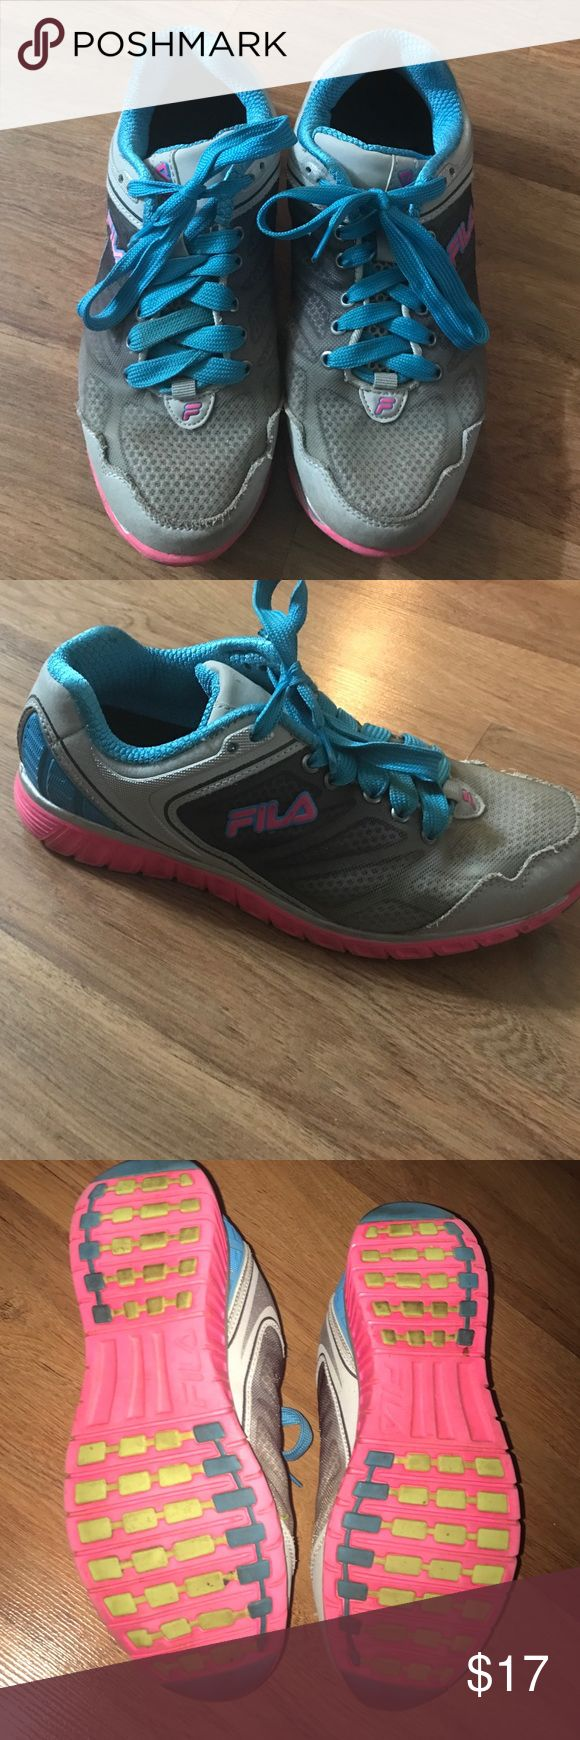 Fila Running Shoes Size 7 1/2 women's running shoes. Worn but in decent condition. Fila Shoes Athletic Shoes